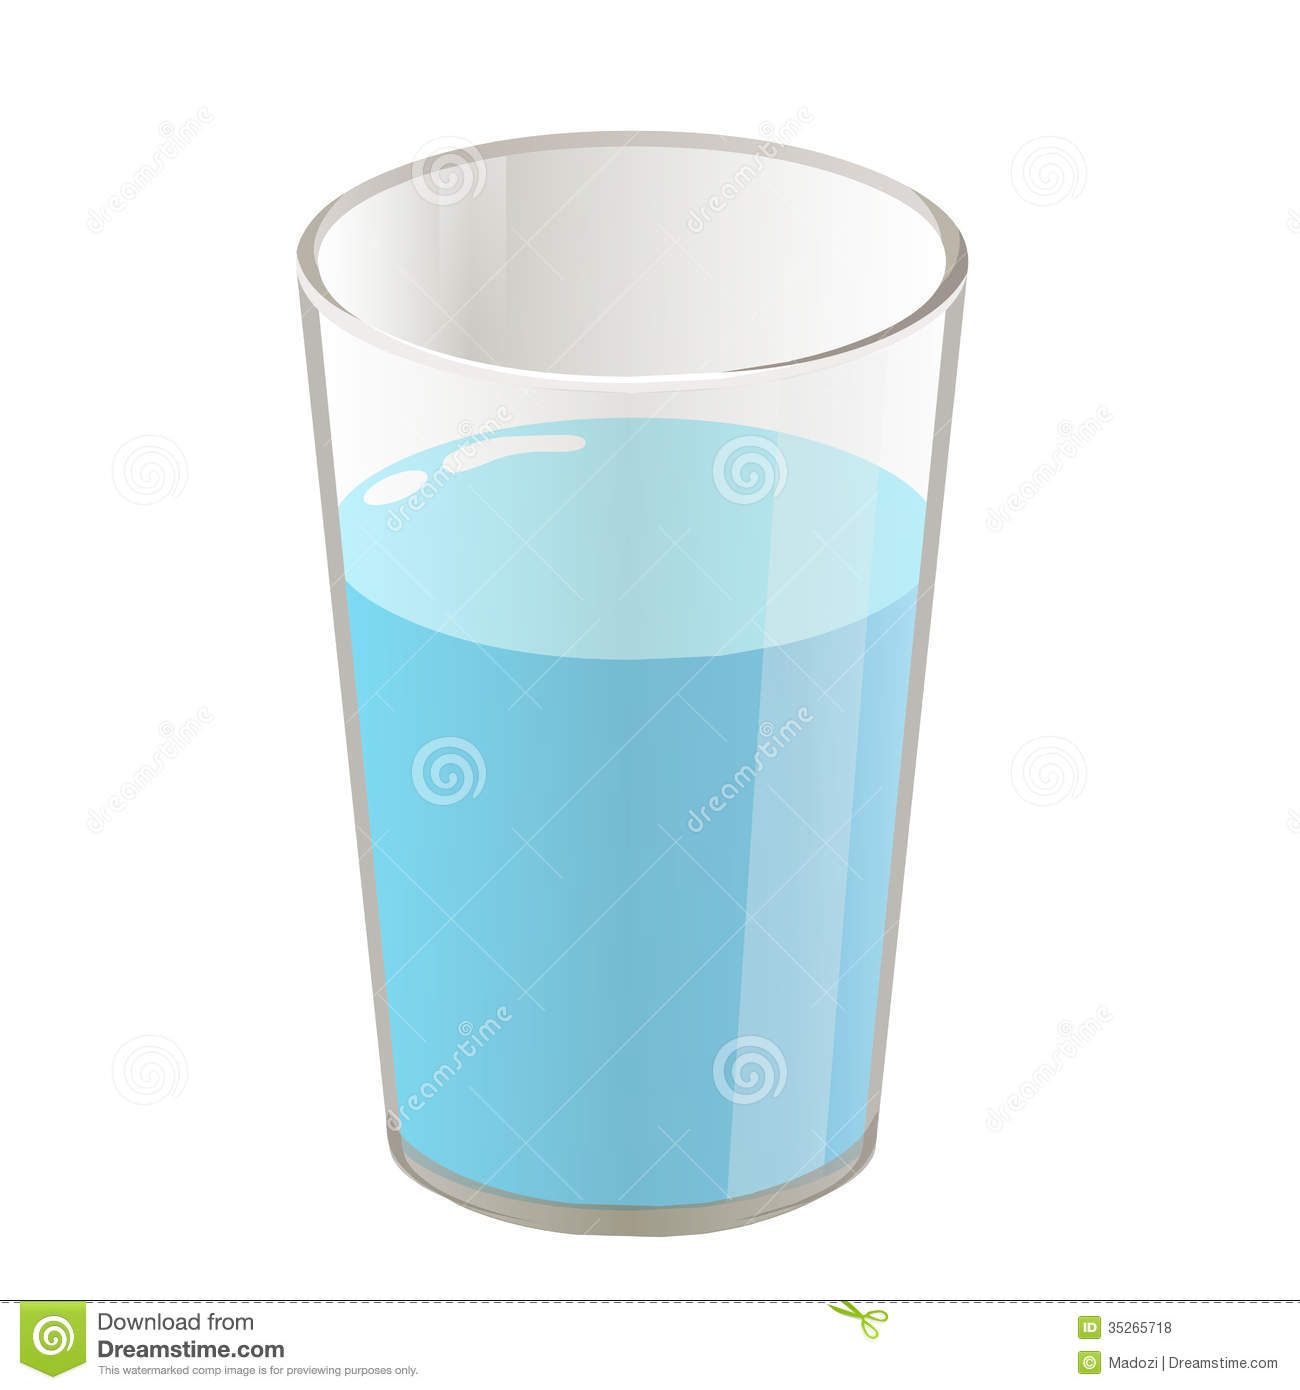 Clipart of glass of water.